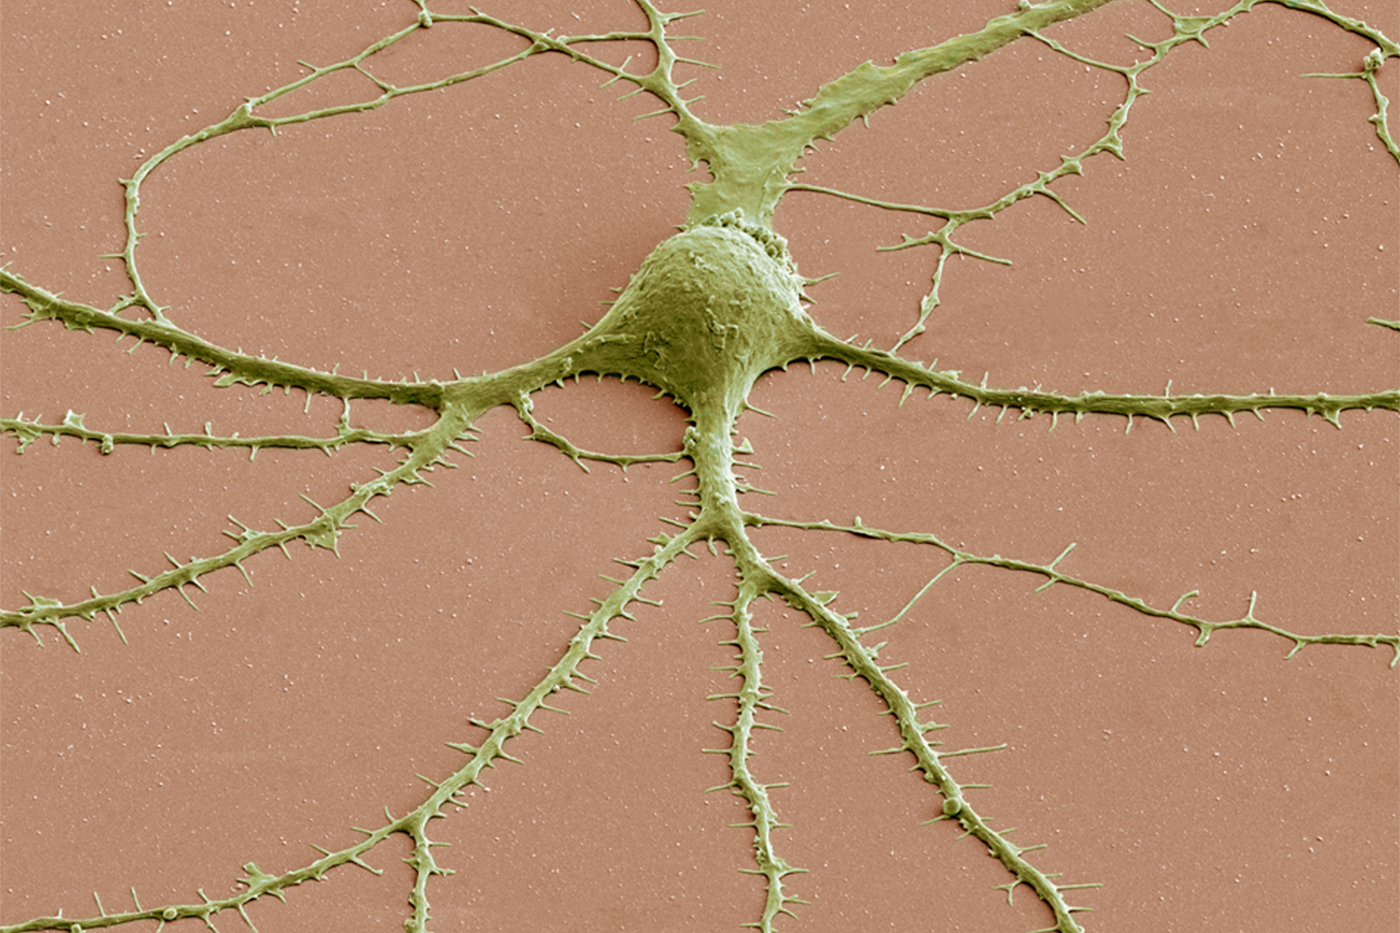 A false-color photomicrograph of a neuron, a key component of the central nervous system.